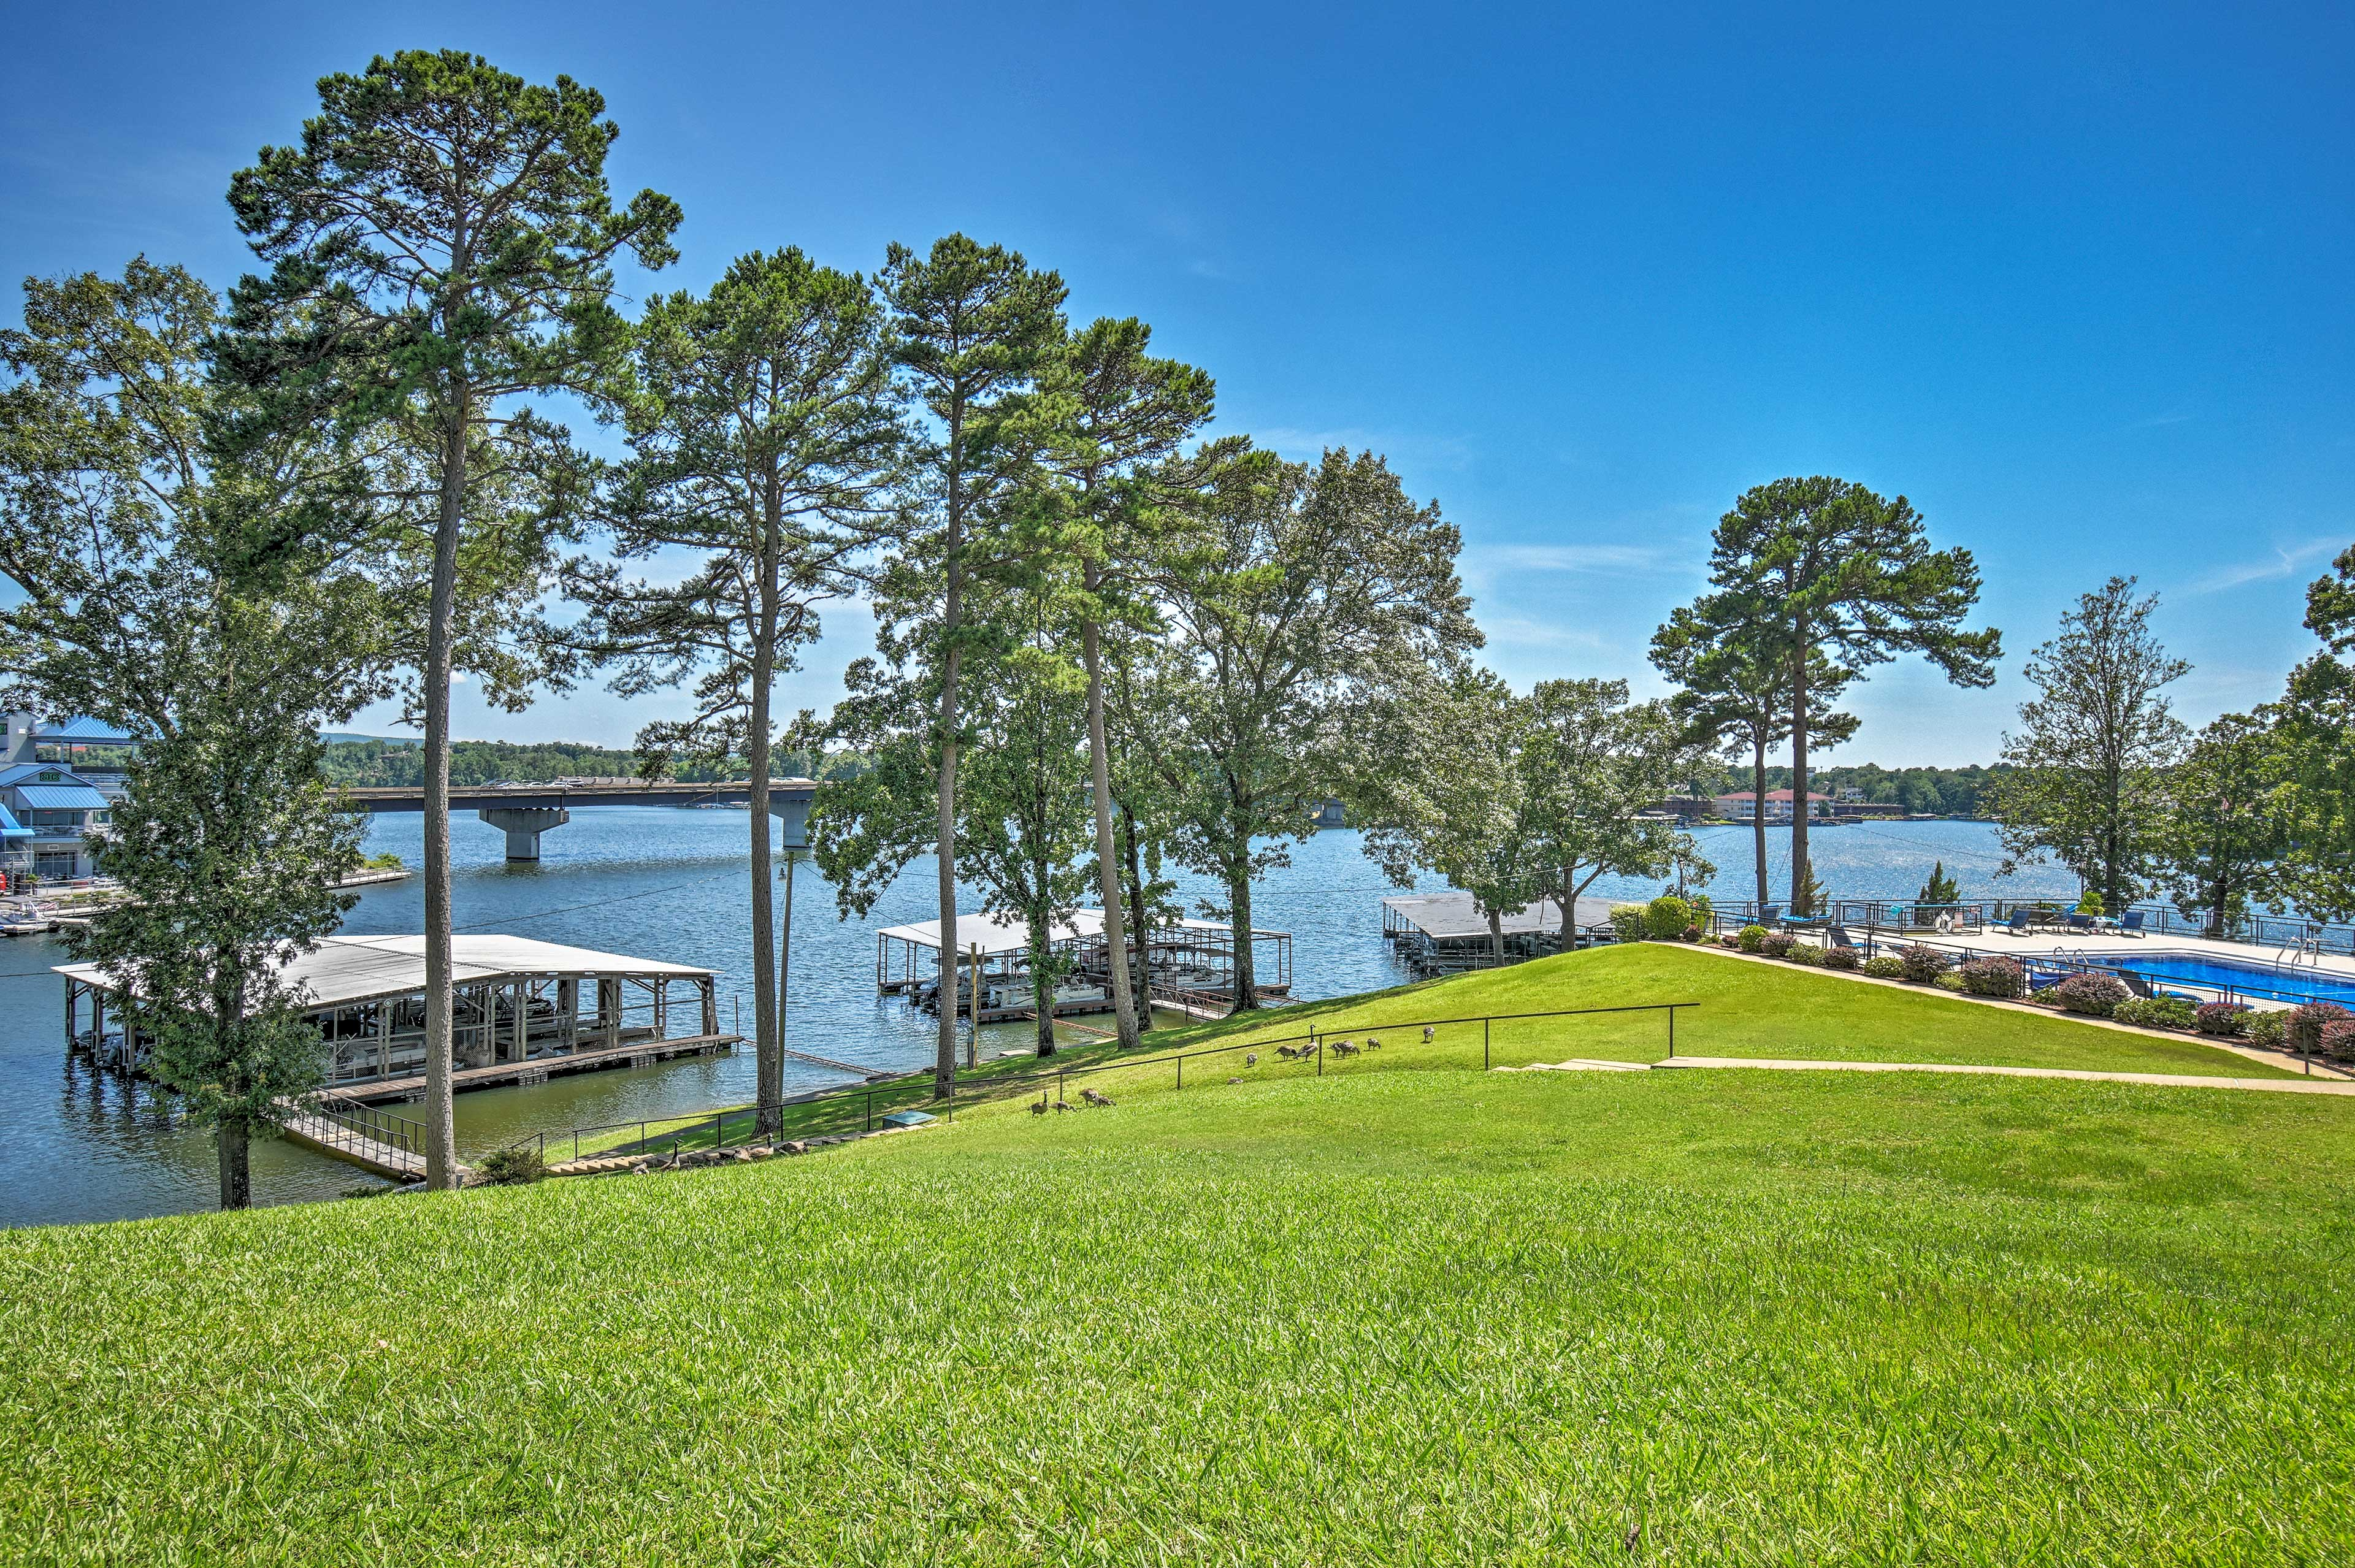 The property is situated on Lake Hamilton with boat slips available.